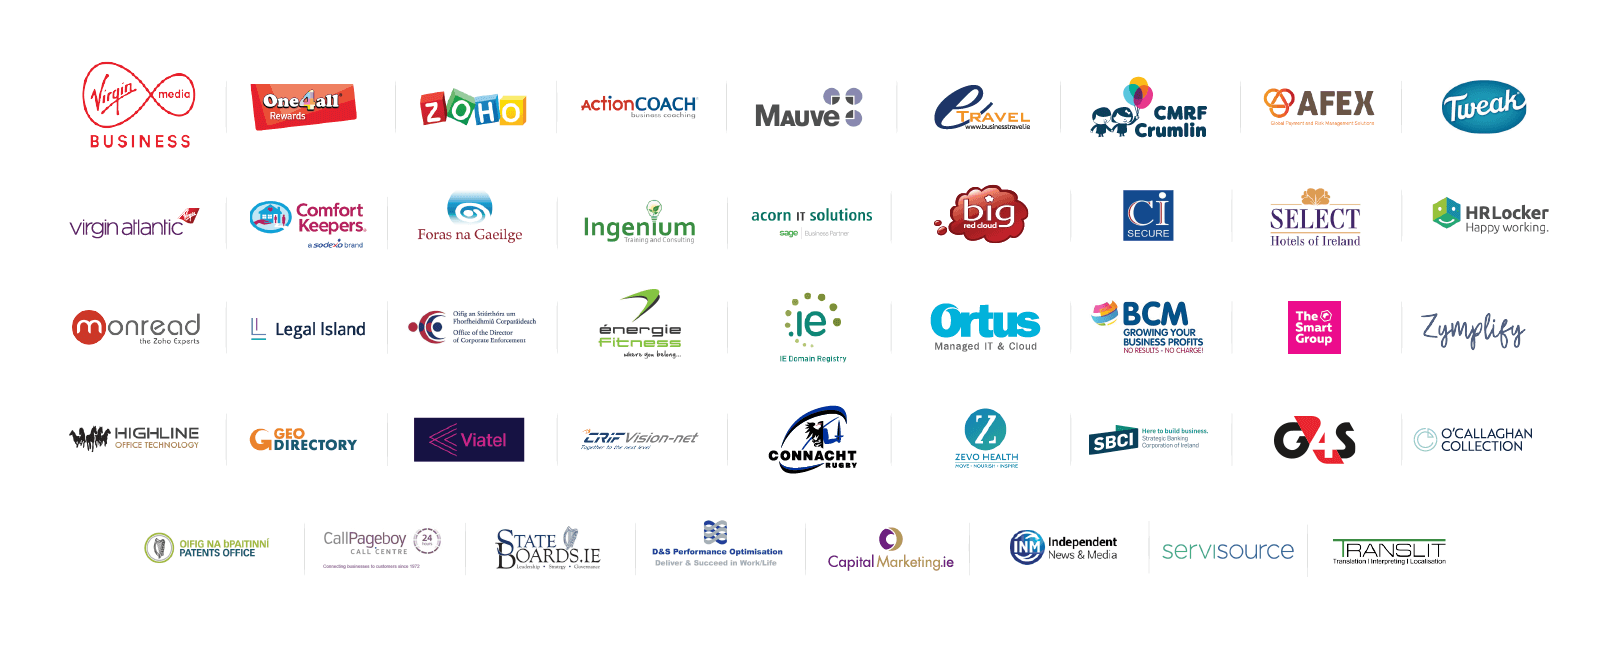 All Ireland Summit 2019 Exhibitors